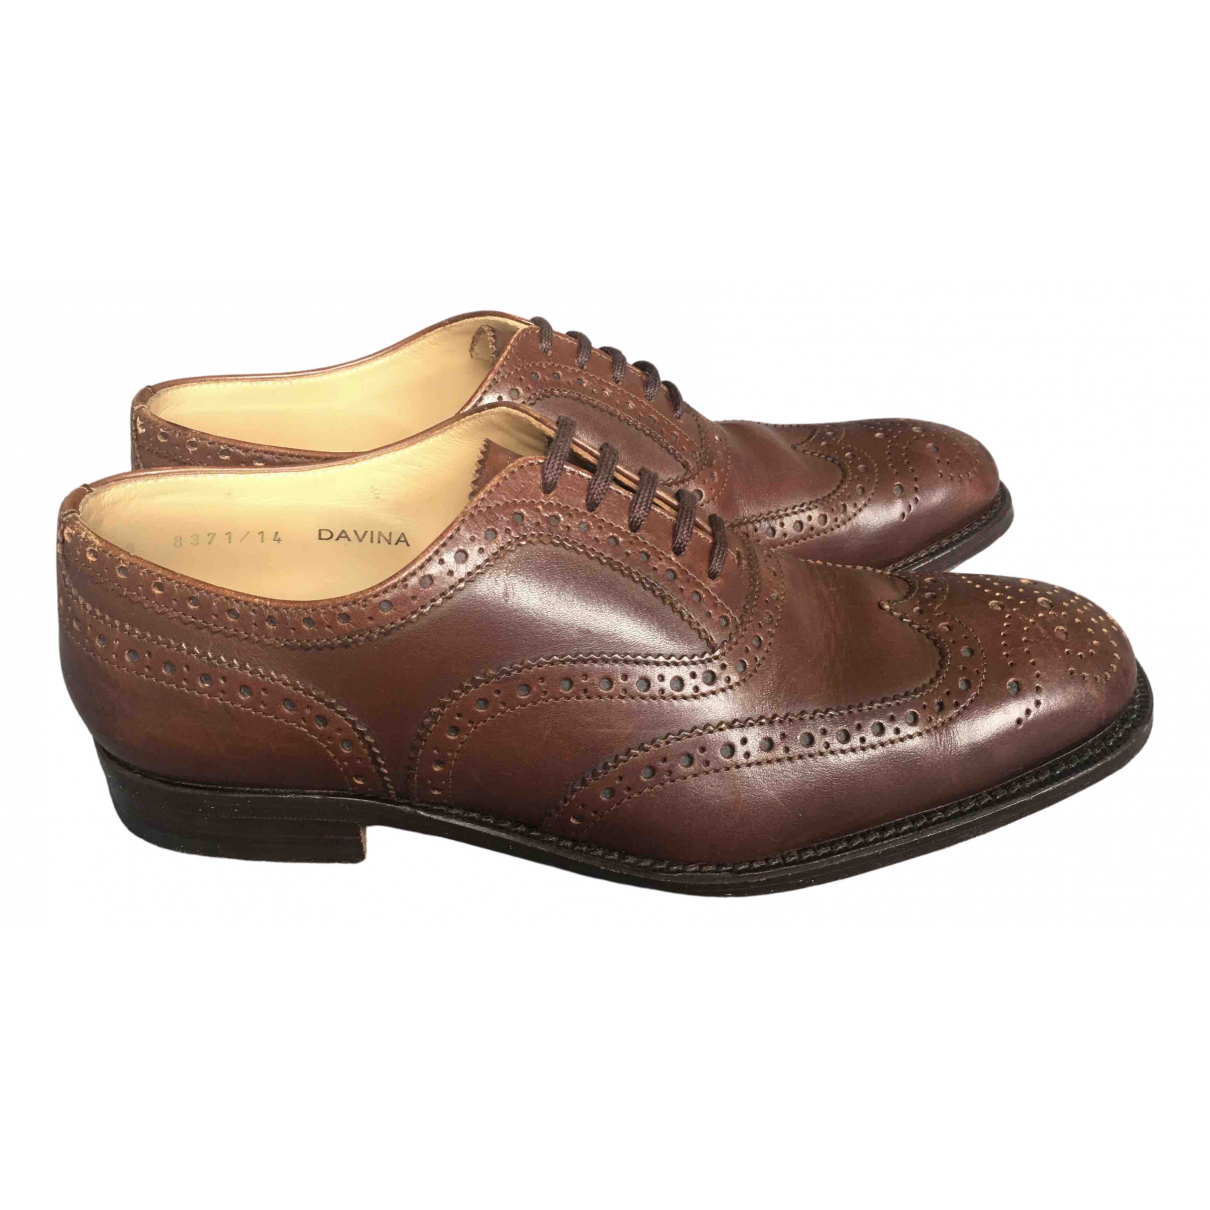 Churchs - Derbies   pour femme en cuir - marron